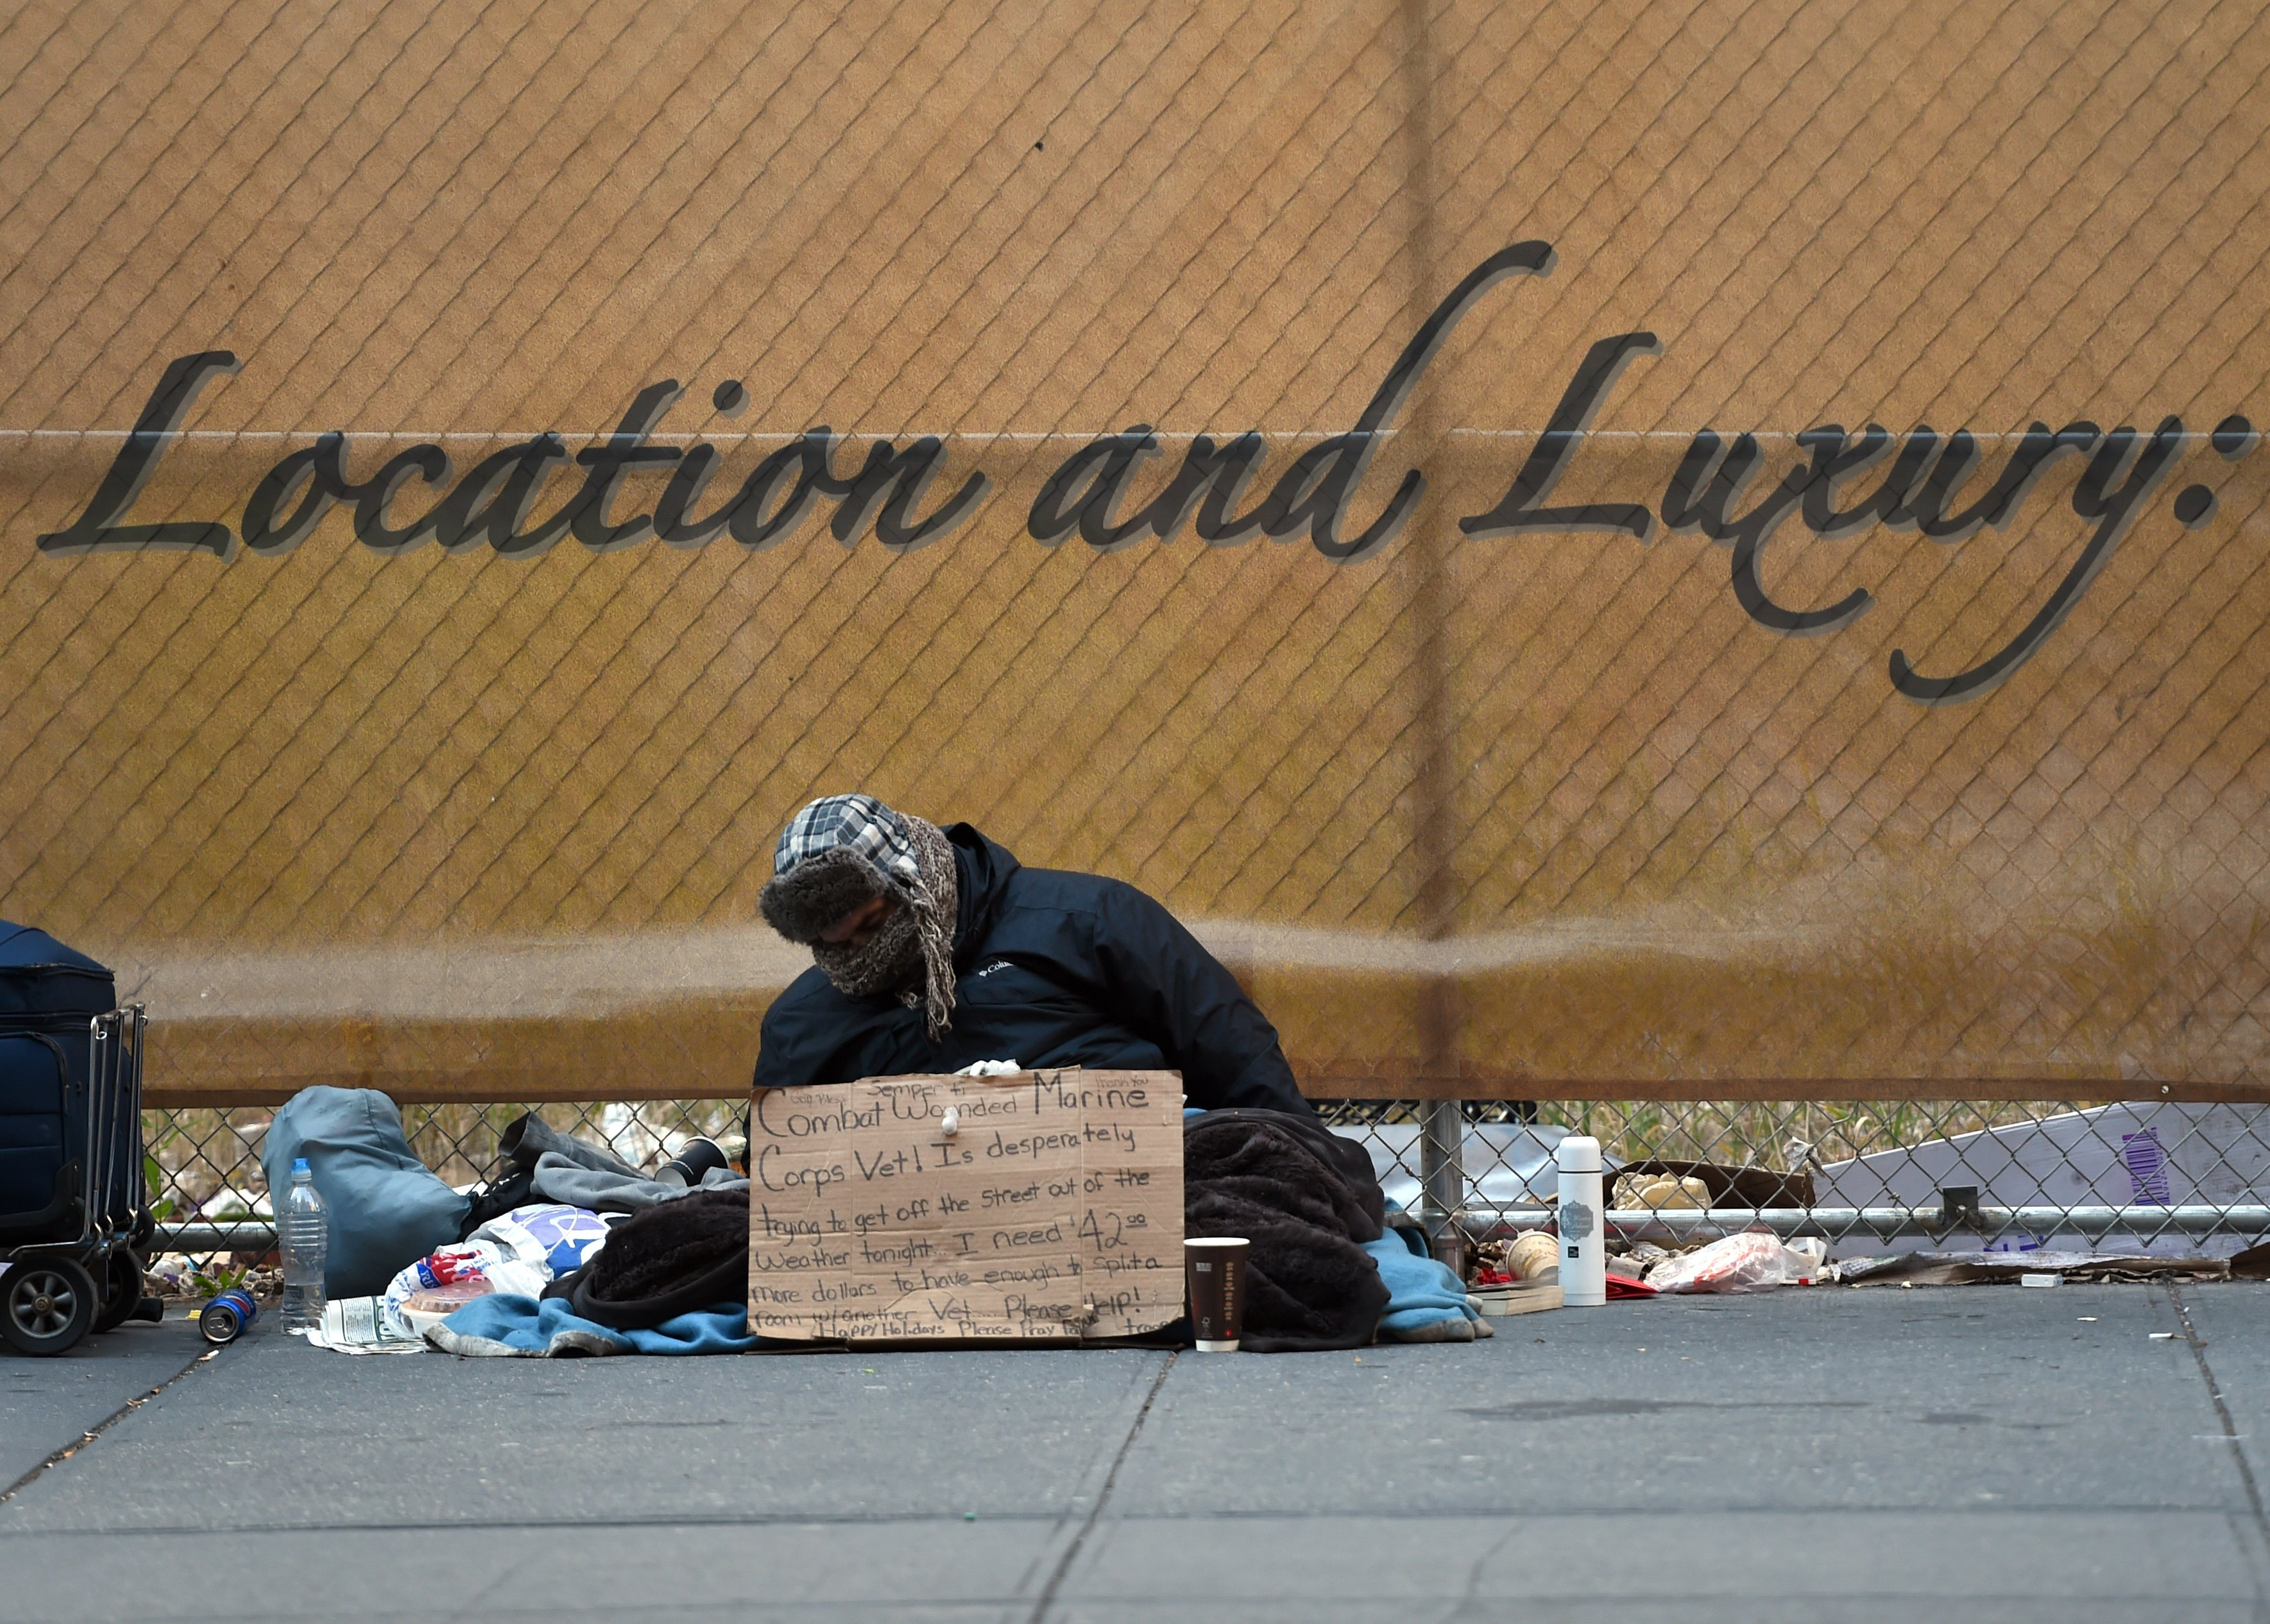 A homeless man looking for money for a room sits on 5th Avenue near 42nd Street in New York January 4, 2016. (Photo: TIMOTHY A. CLARY/AFP/Getty Images)